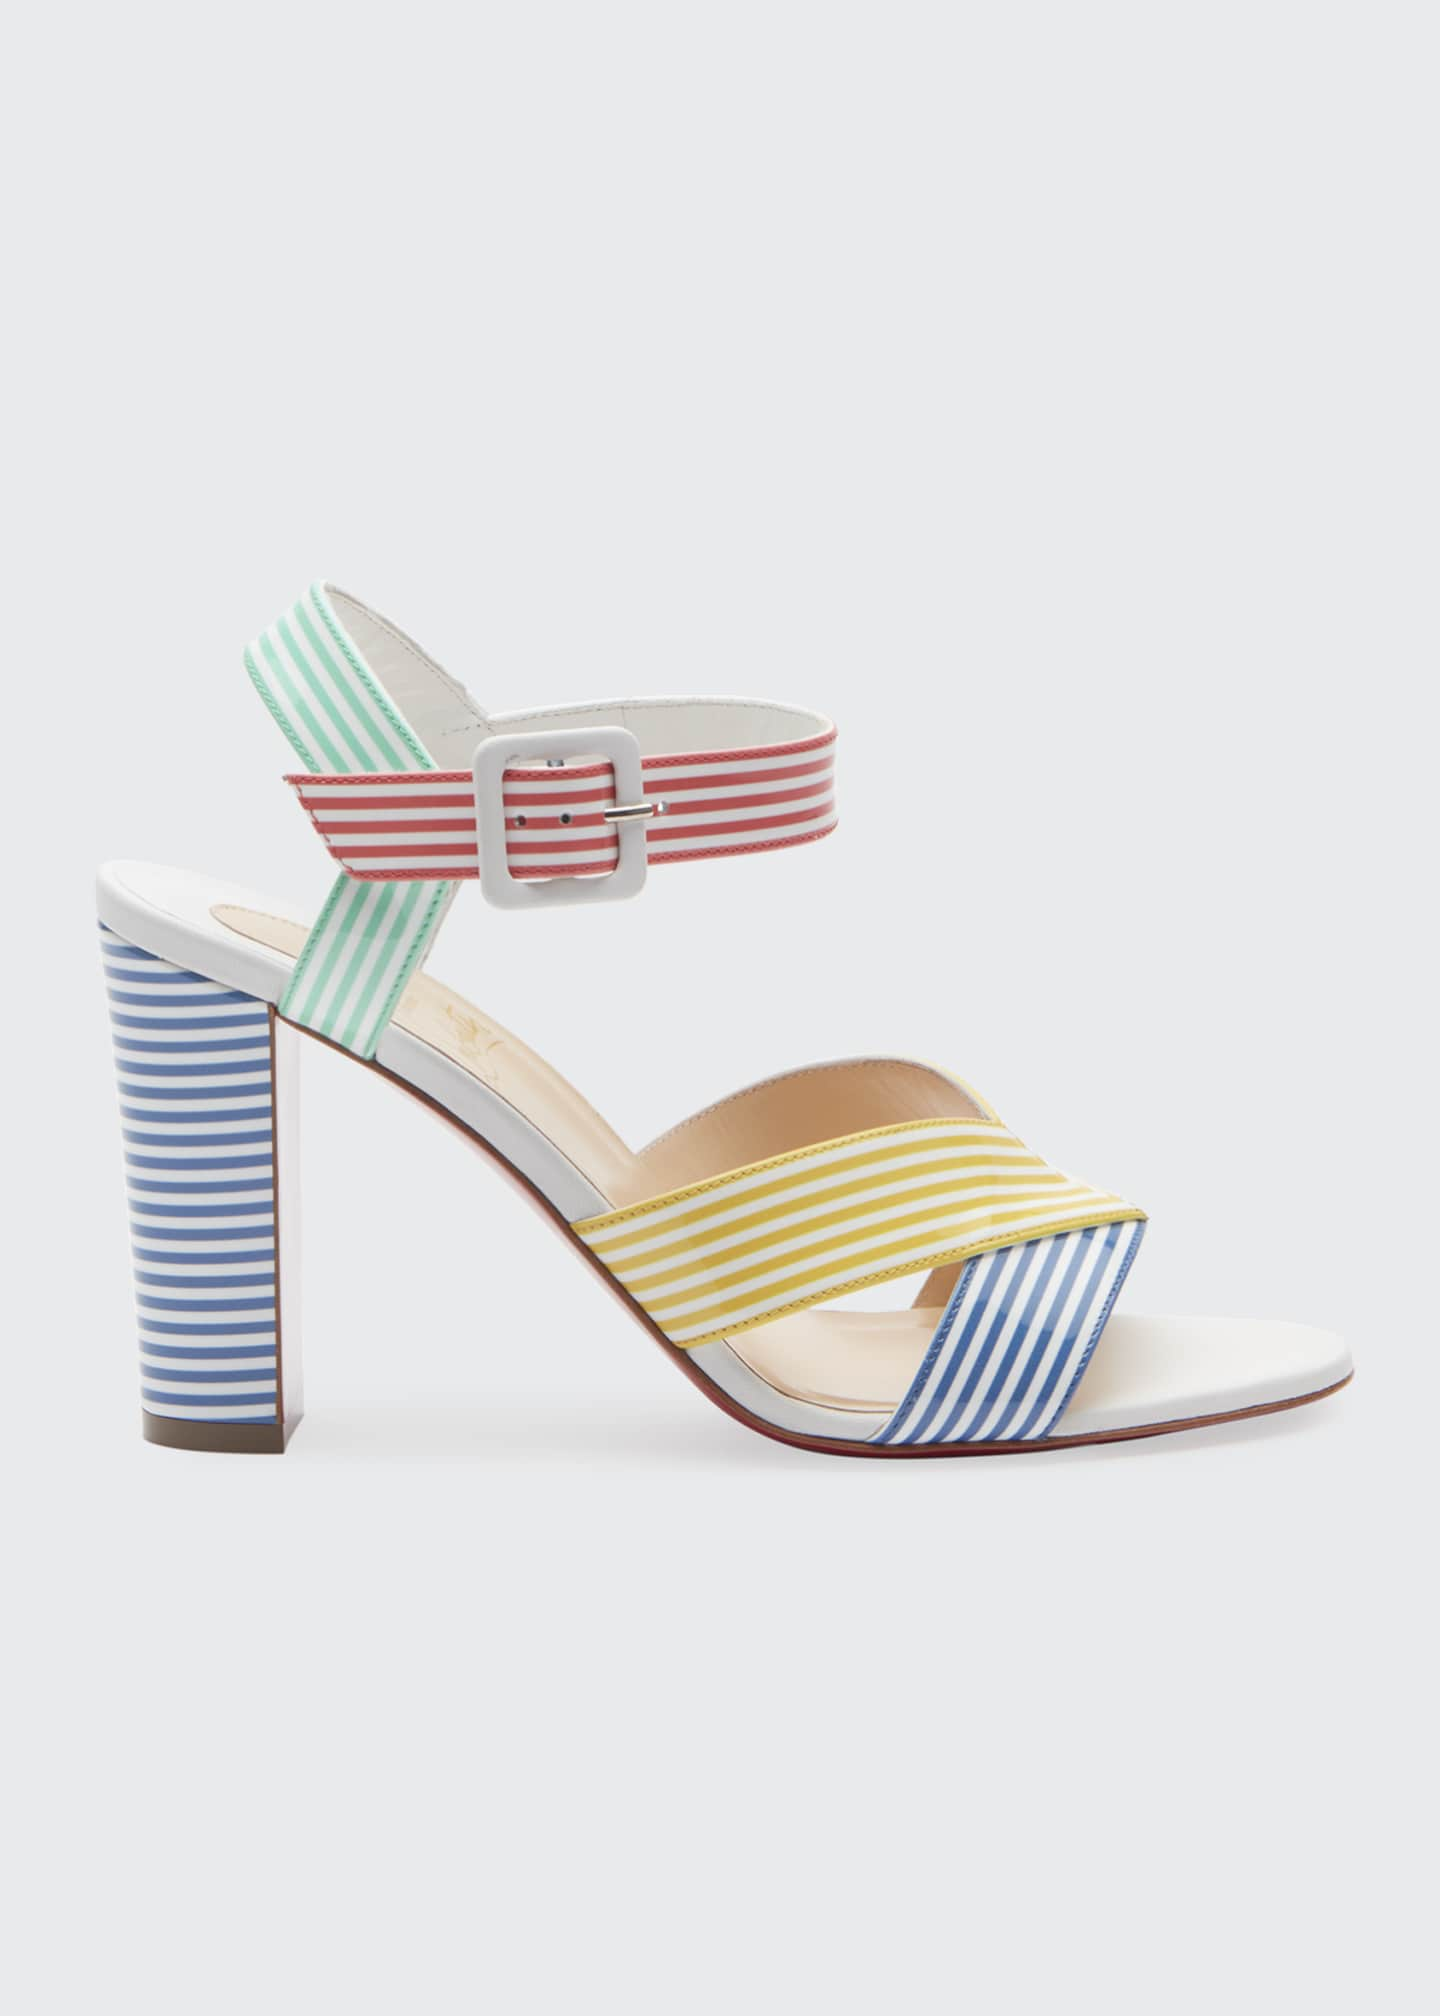 Christian Louboutin Palavas Multicolored Striped 85mm Red Sole